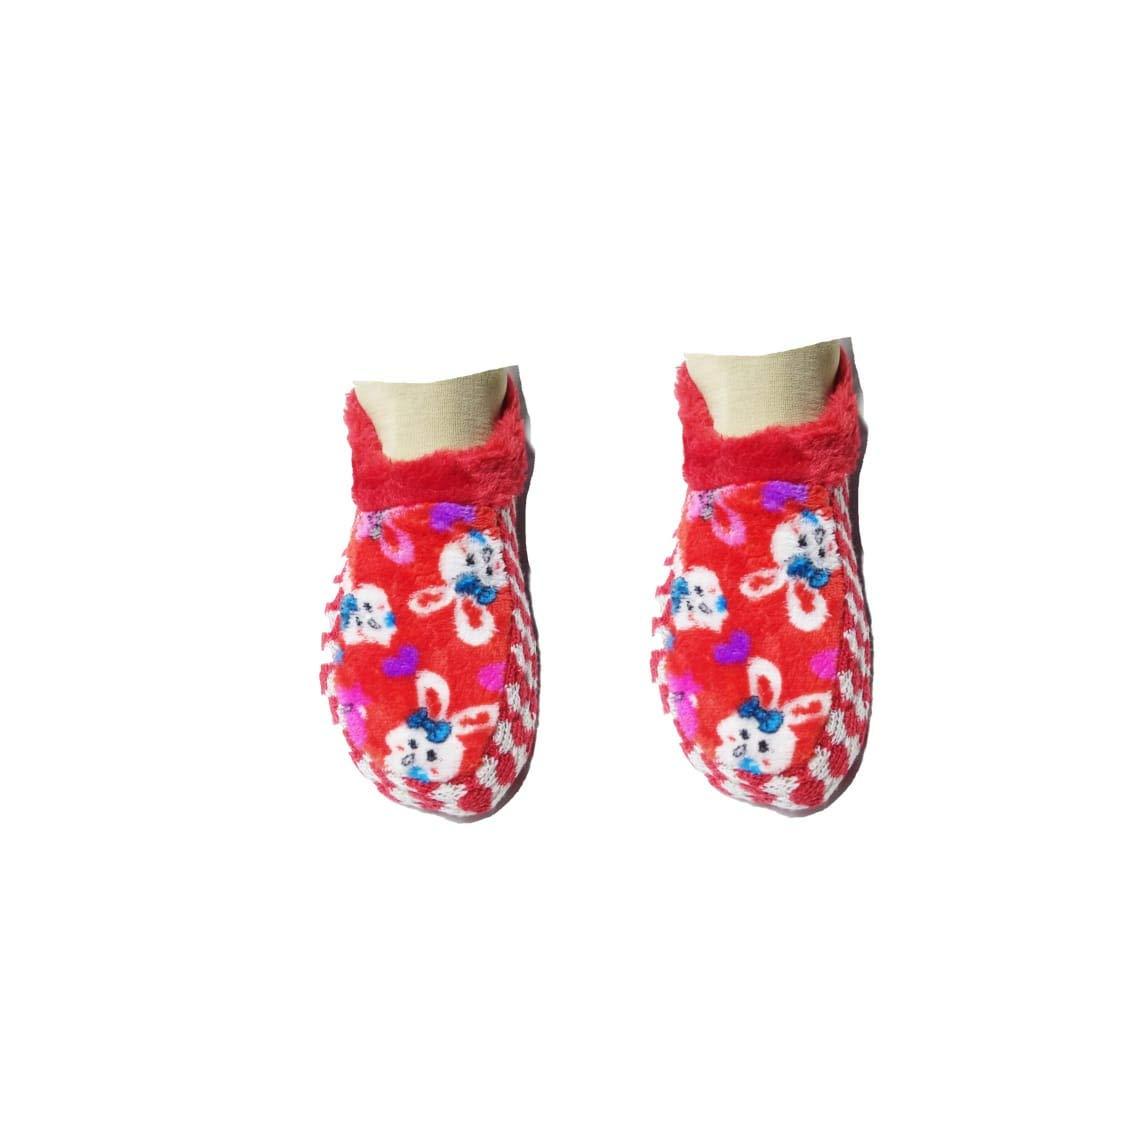 4520a7c6e73b1 ICONIC.FASHION;Slipper For Women Ladies Sweet Girl Multi Coloured ...